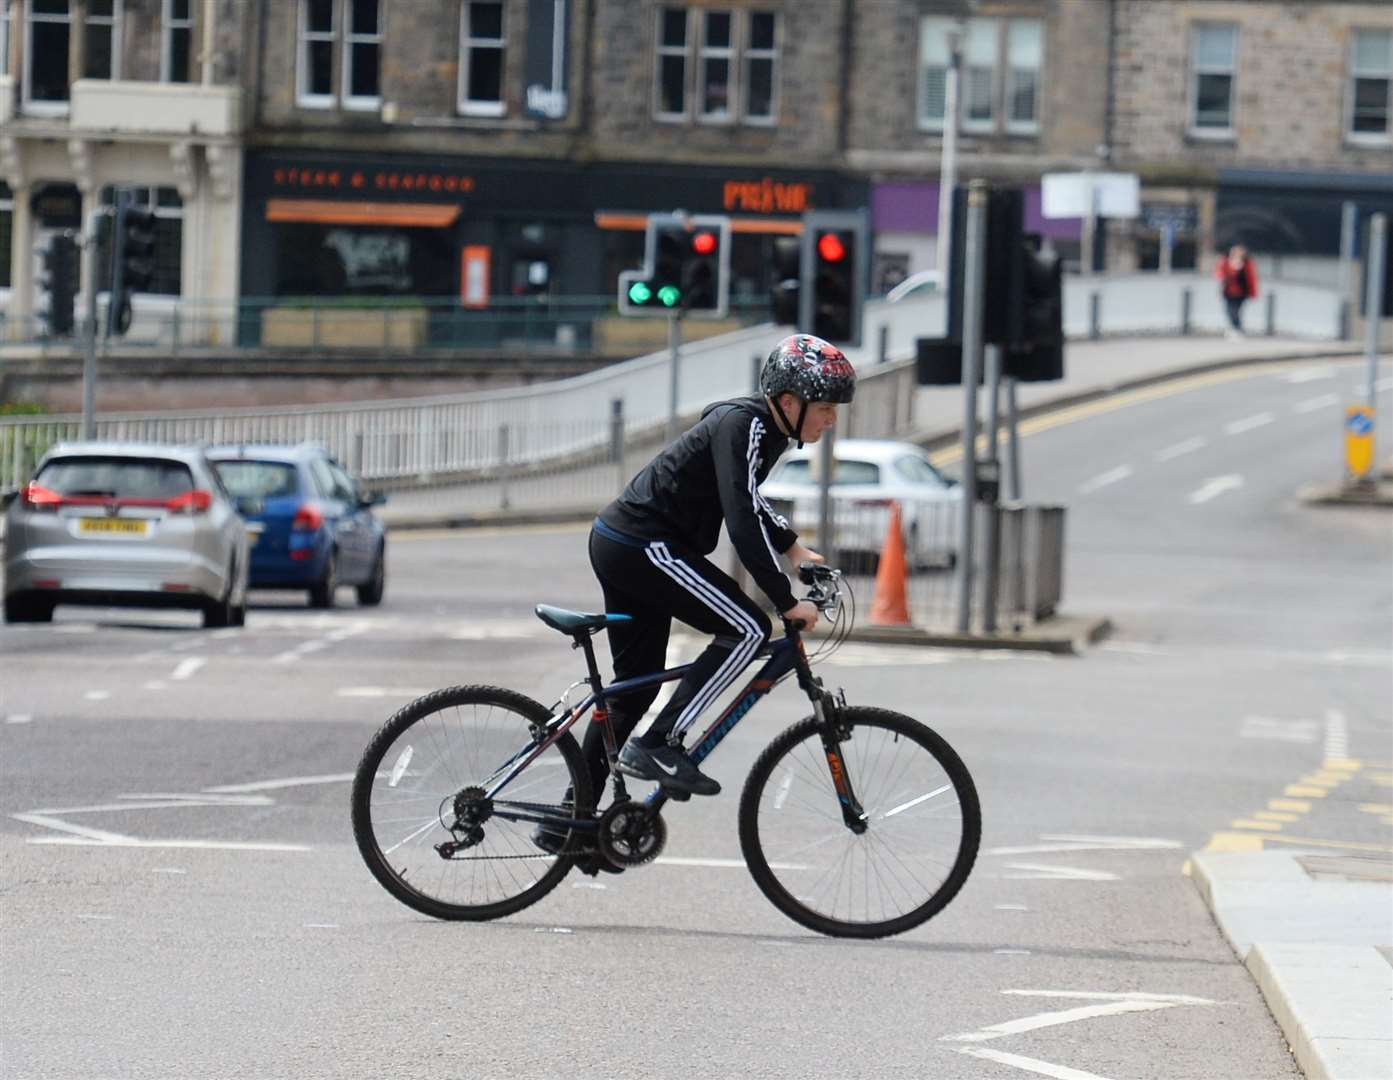 Changes will benefit cyclists.